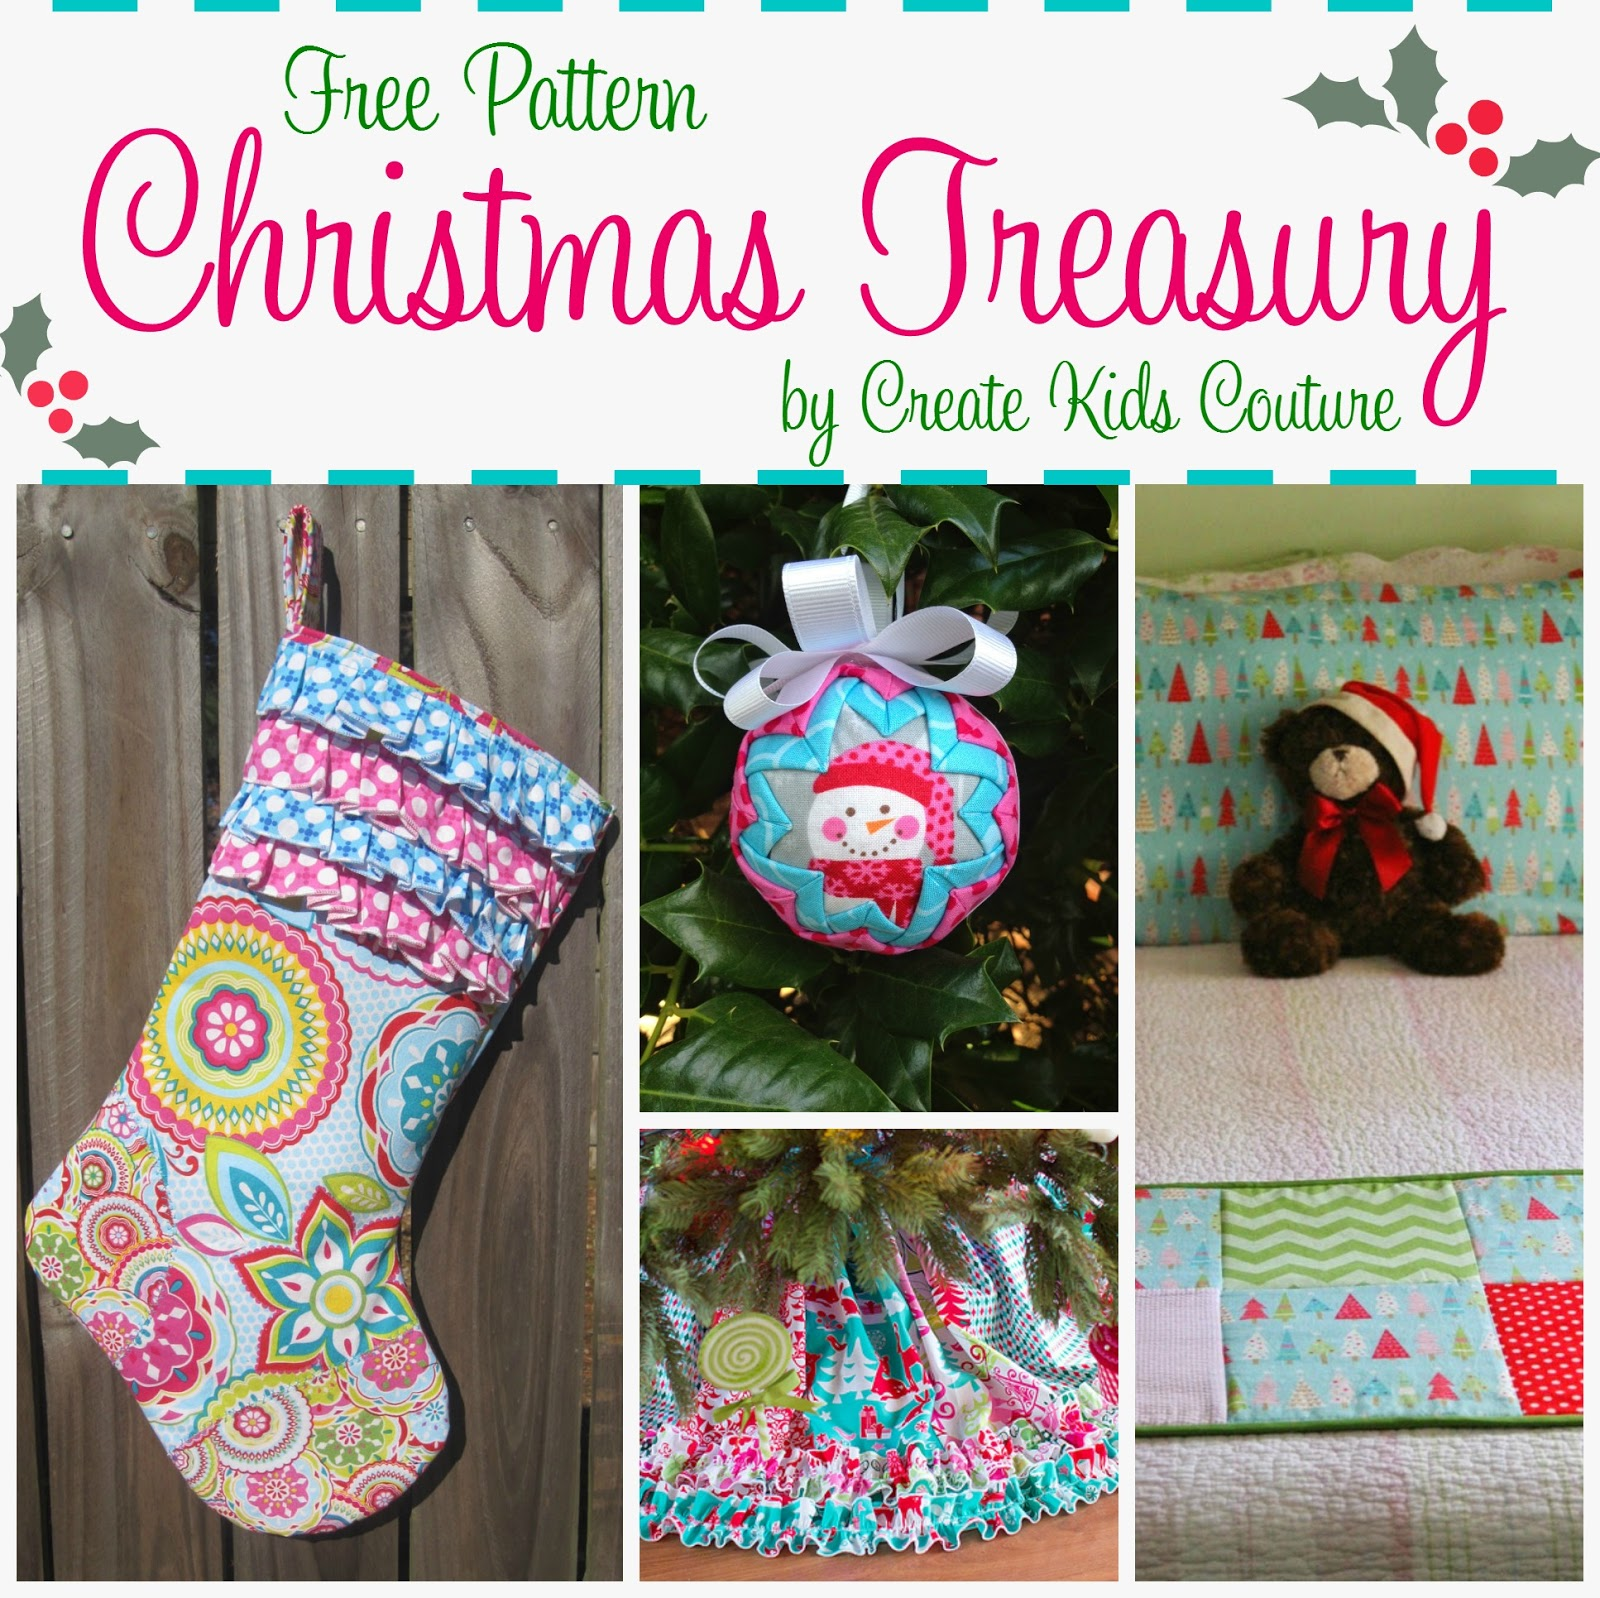 Create kids couture christmas treasury thursday november 12 2015 jeuxipadfo Gallery